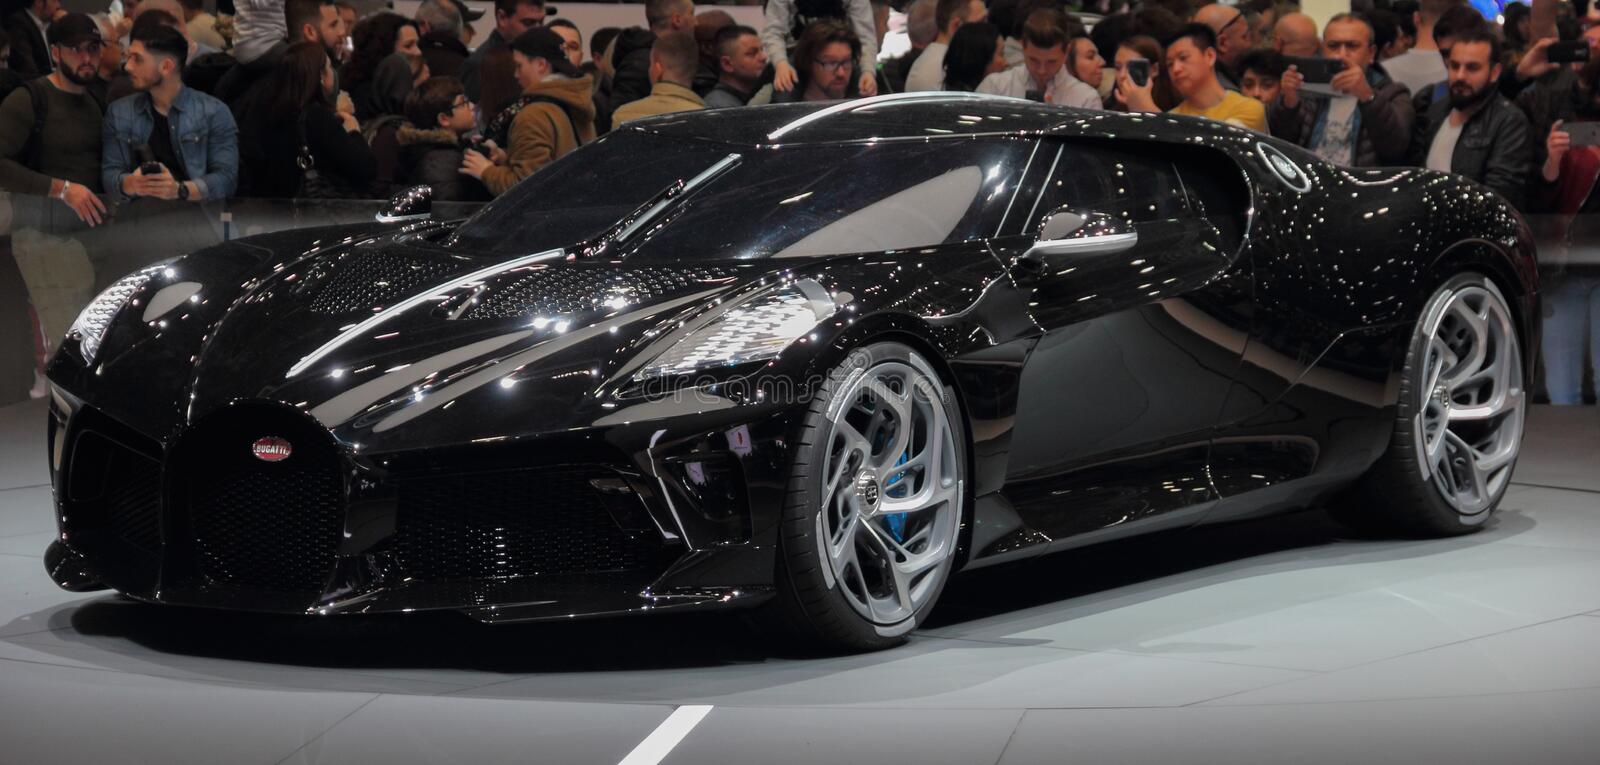 Switzerland; Geneva; March 10, 2019; Bugatti - La Voiture Noire; The 89th International Motor Show in Geneva from 7th to 17th of. March, 2019 stock image